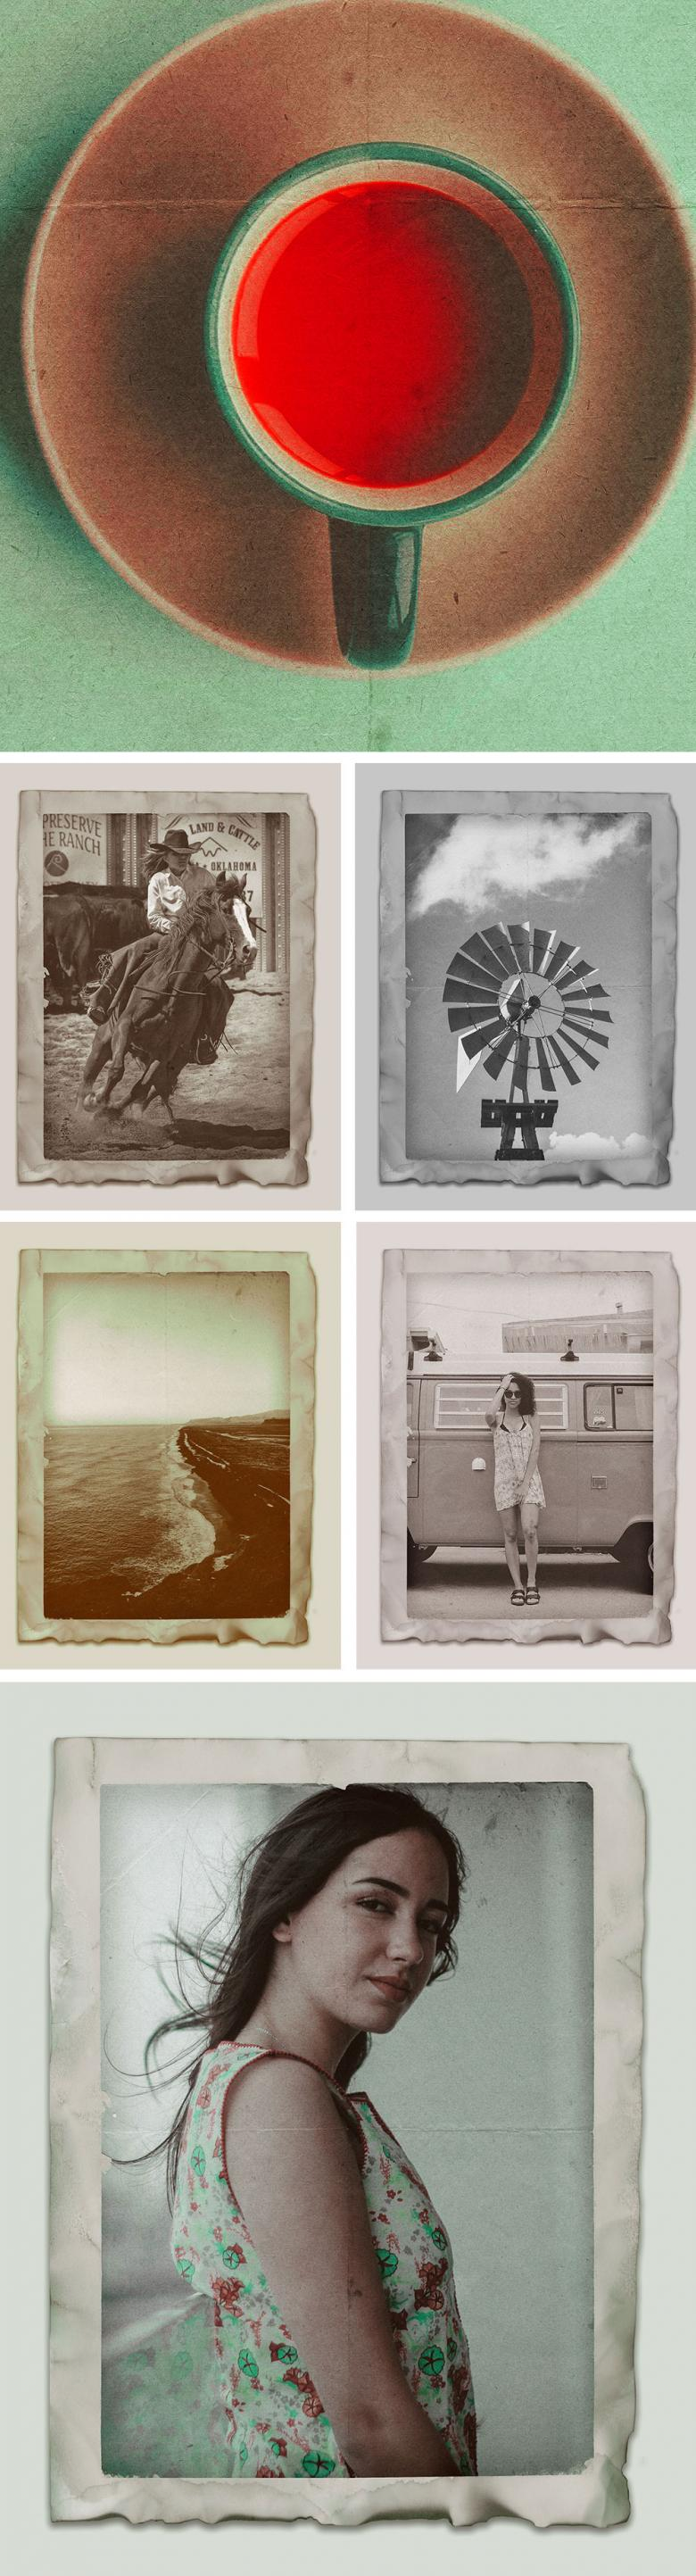 Vintage Photo Effects Template